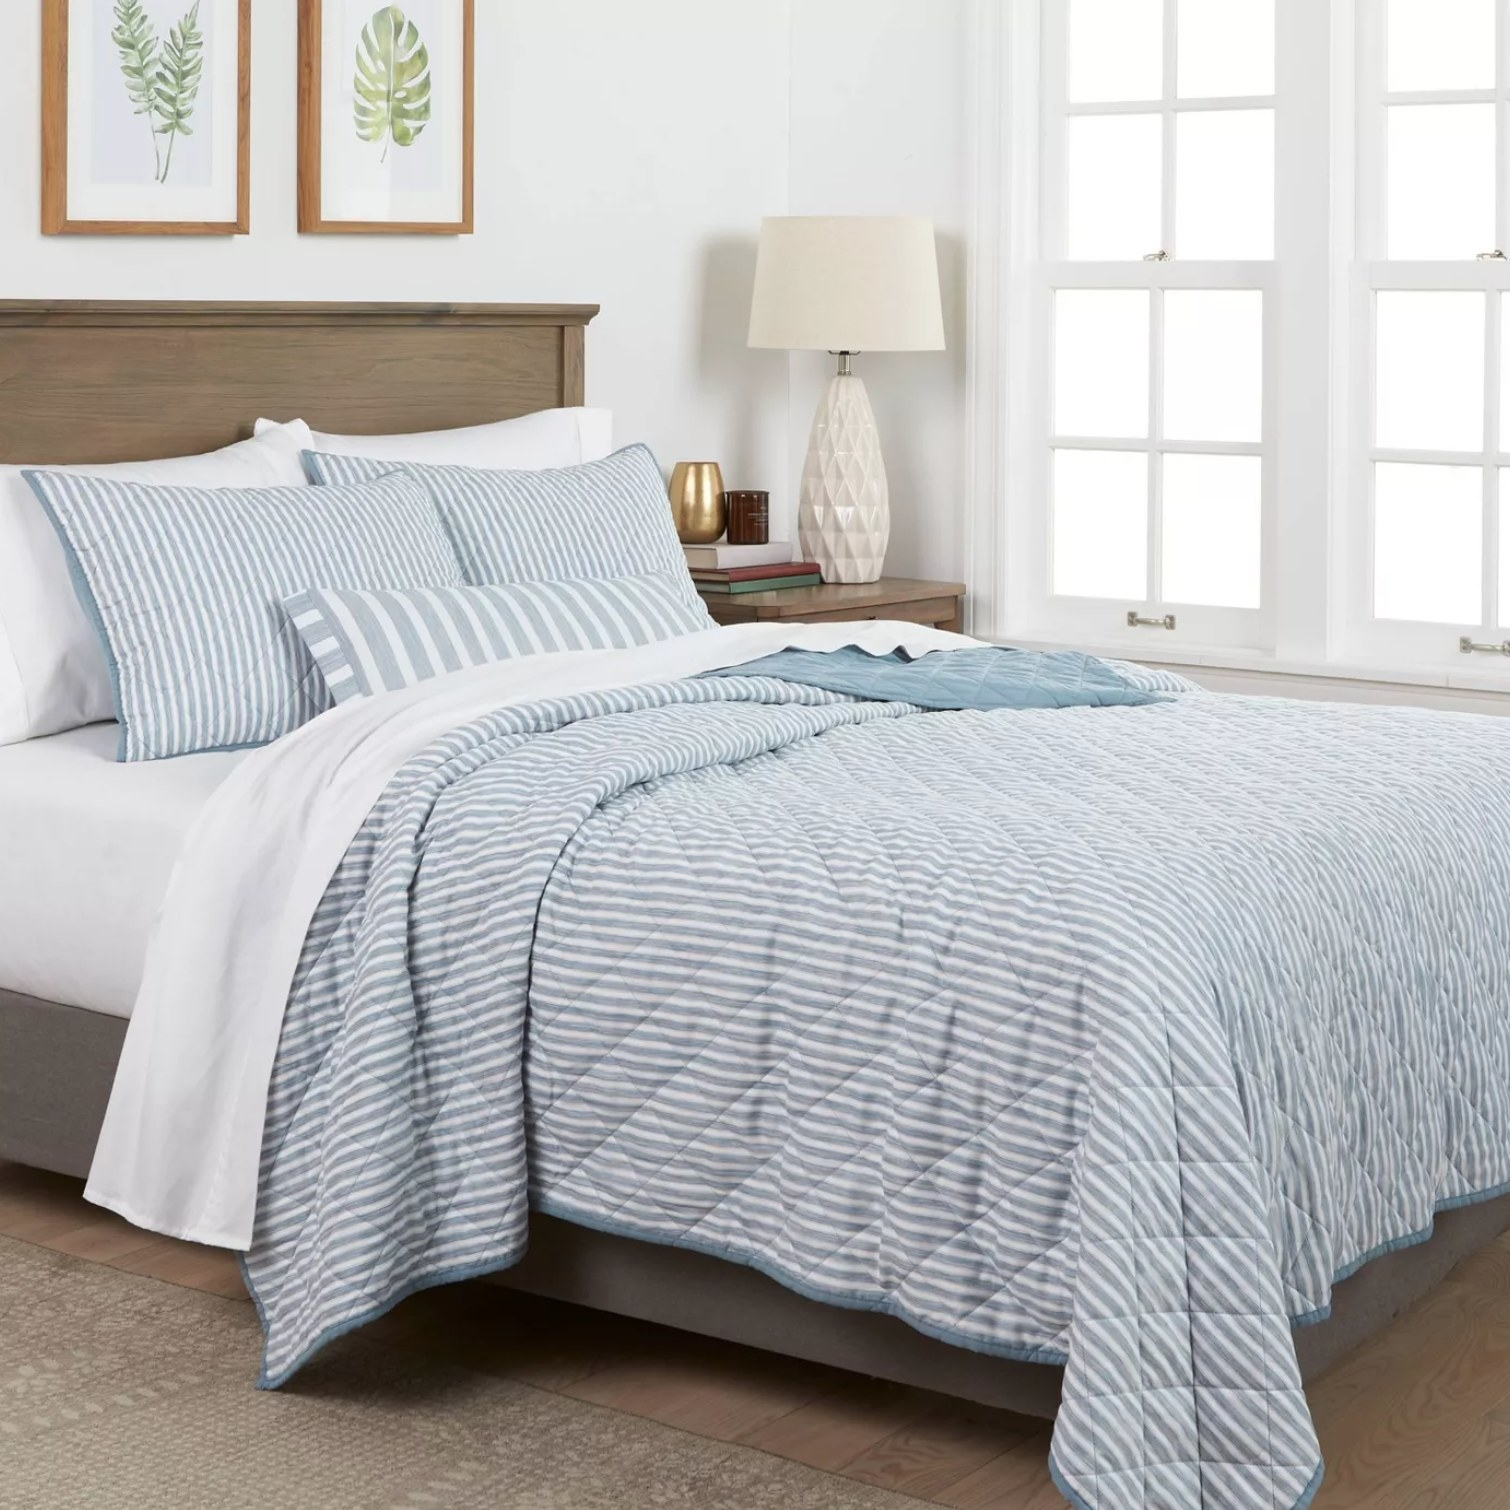 The set in blue with white stripes on a bed